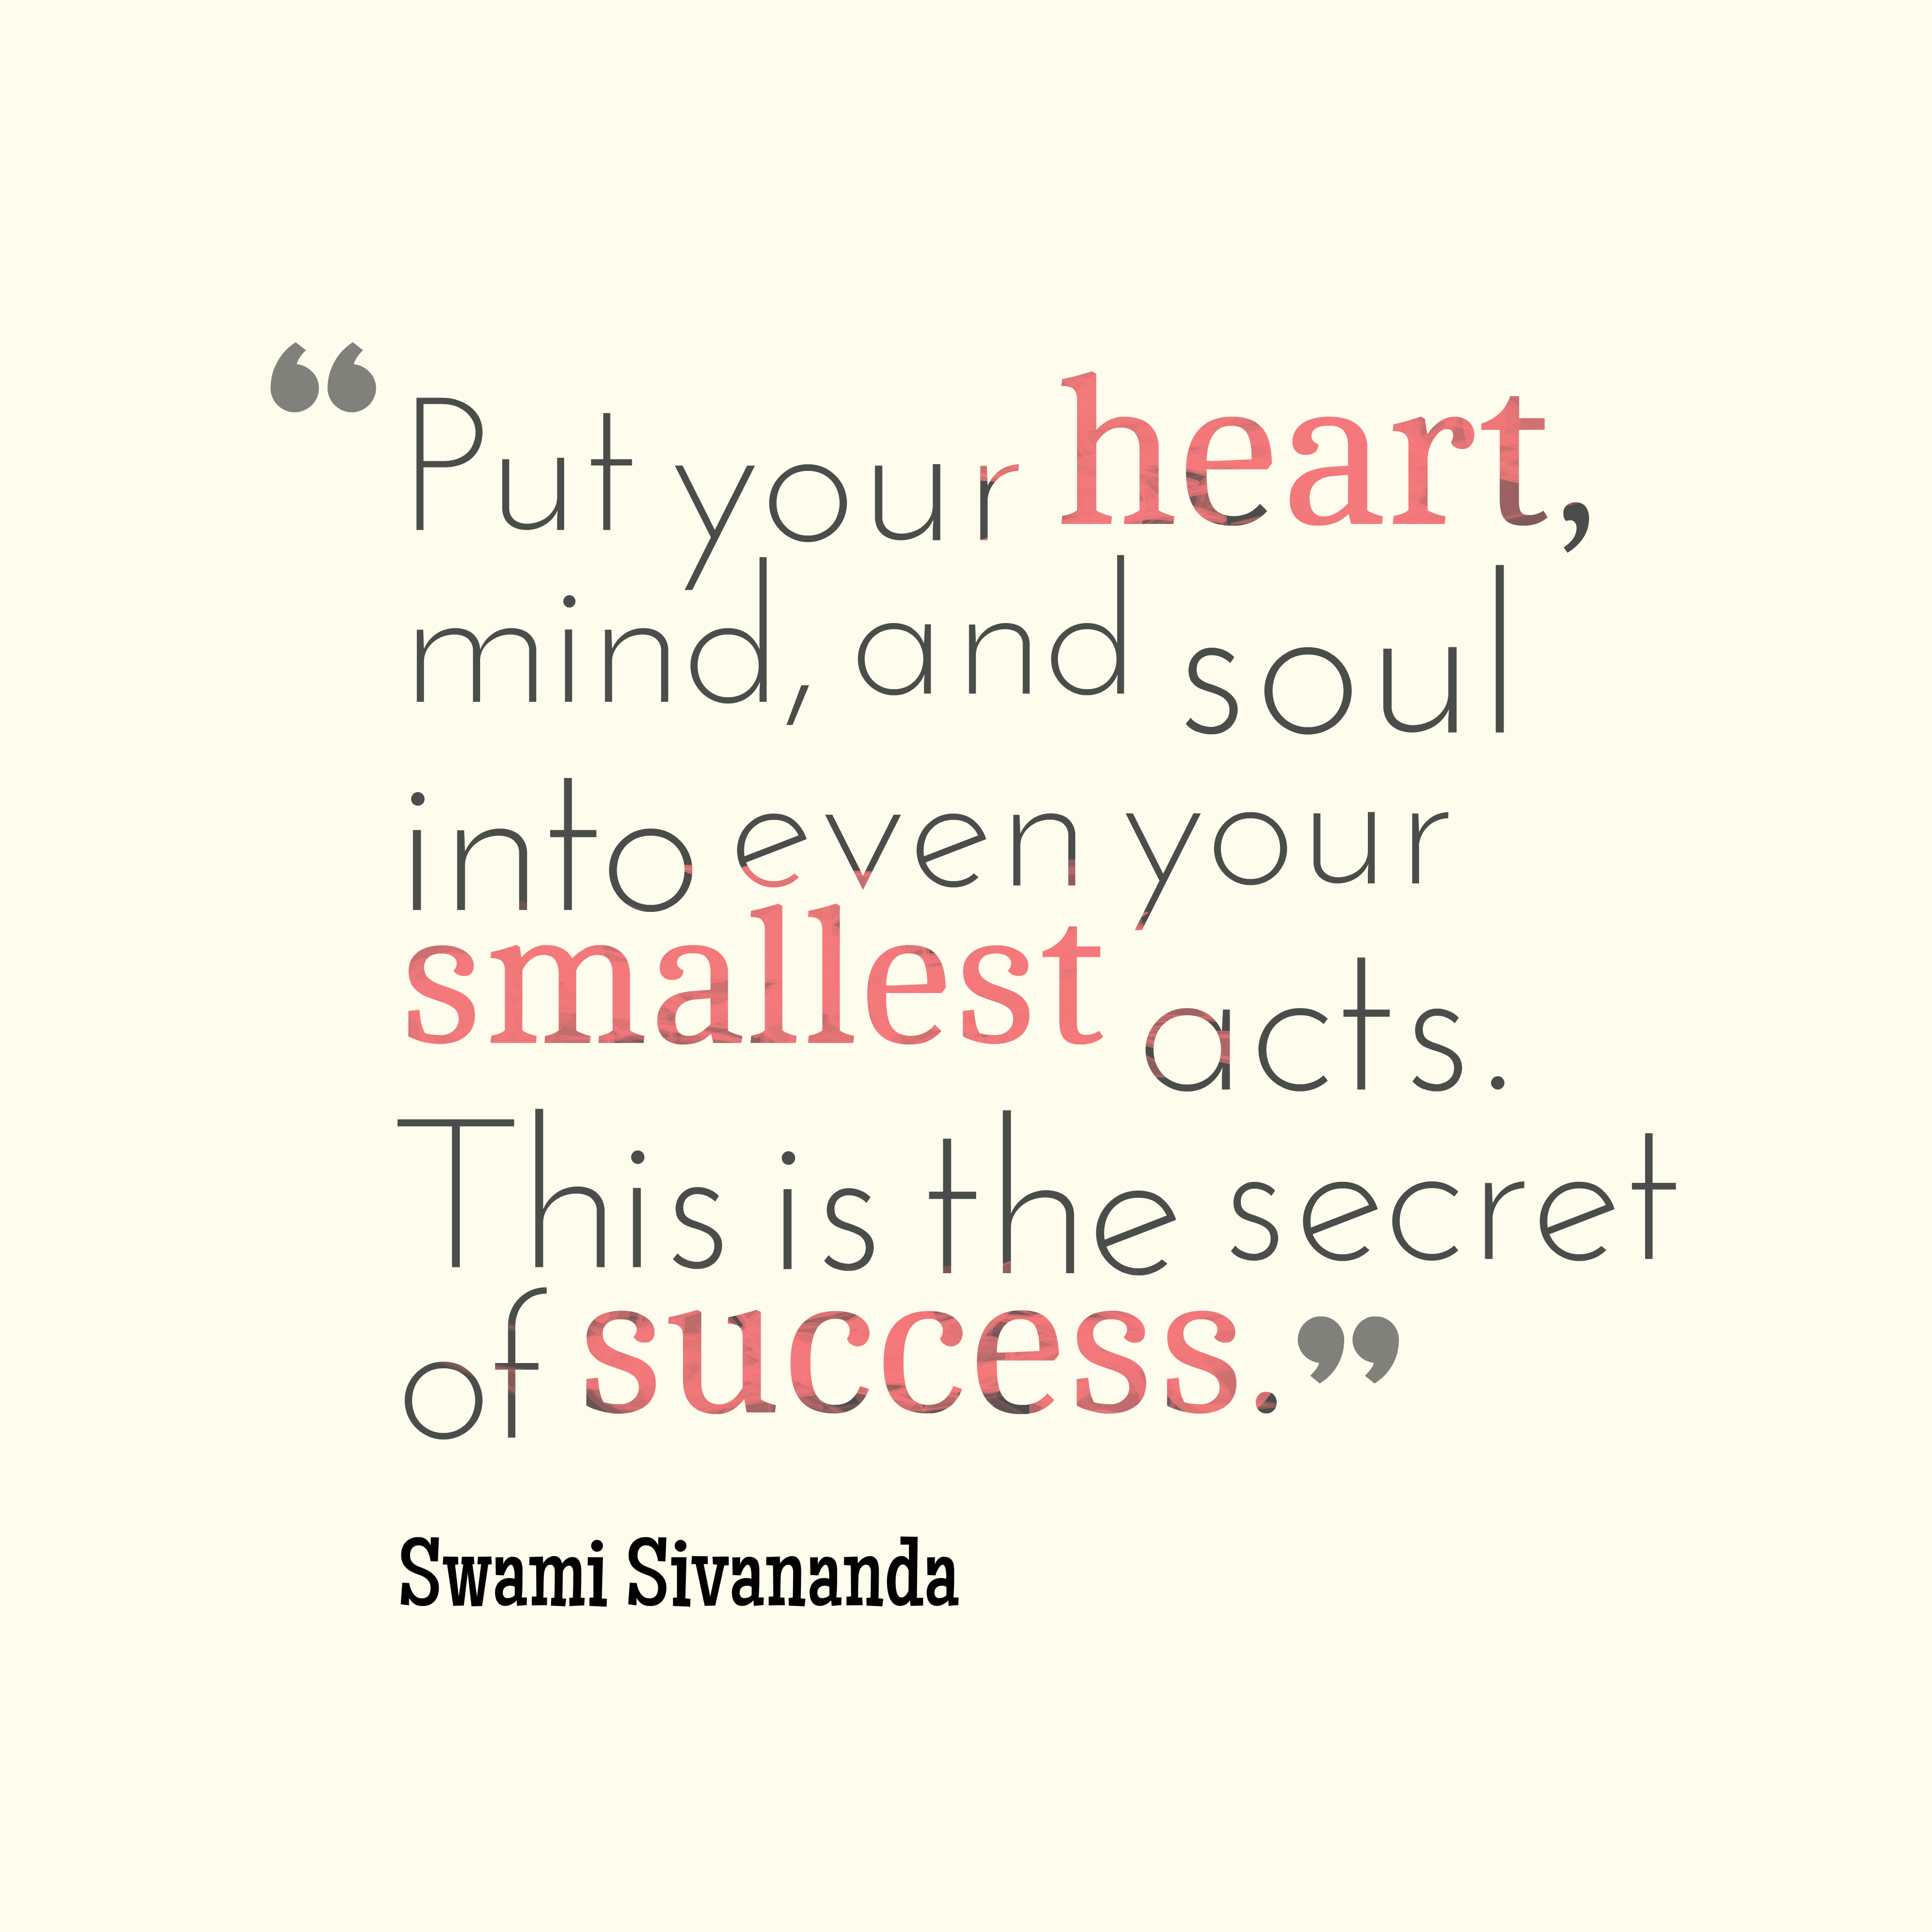 Heart And Soul Quotes And Sayings: Picture » Swami Sivananda Quote About Success